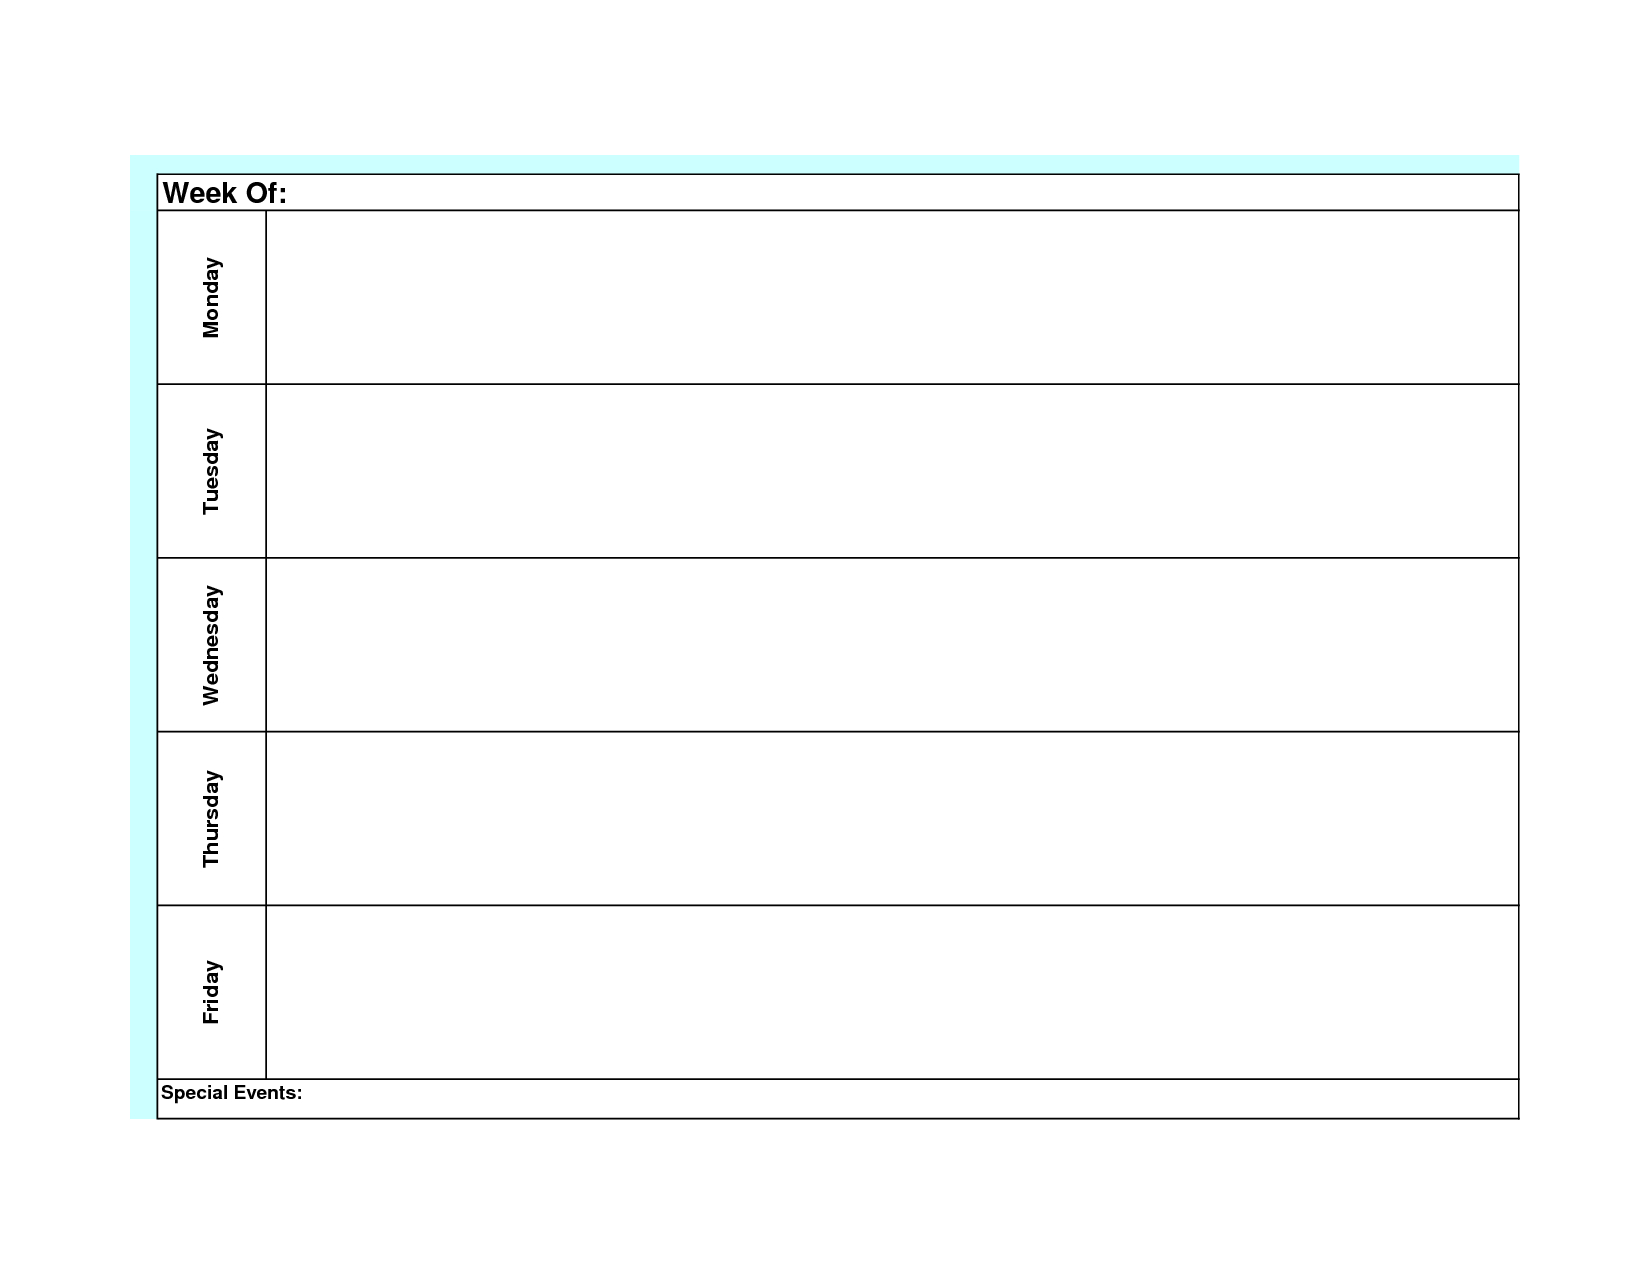 Blank Weekly Calendar Monday Through Friday Template Planner To | Smorad with Monday Through Friday Planner Template